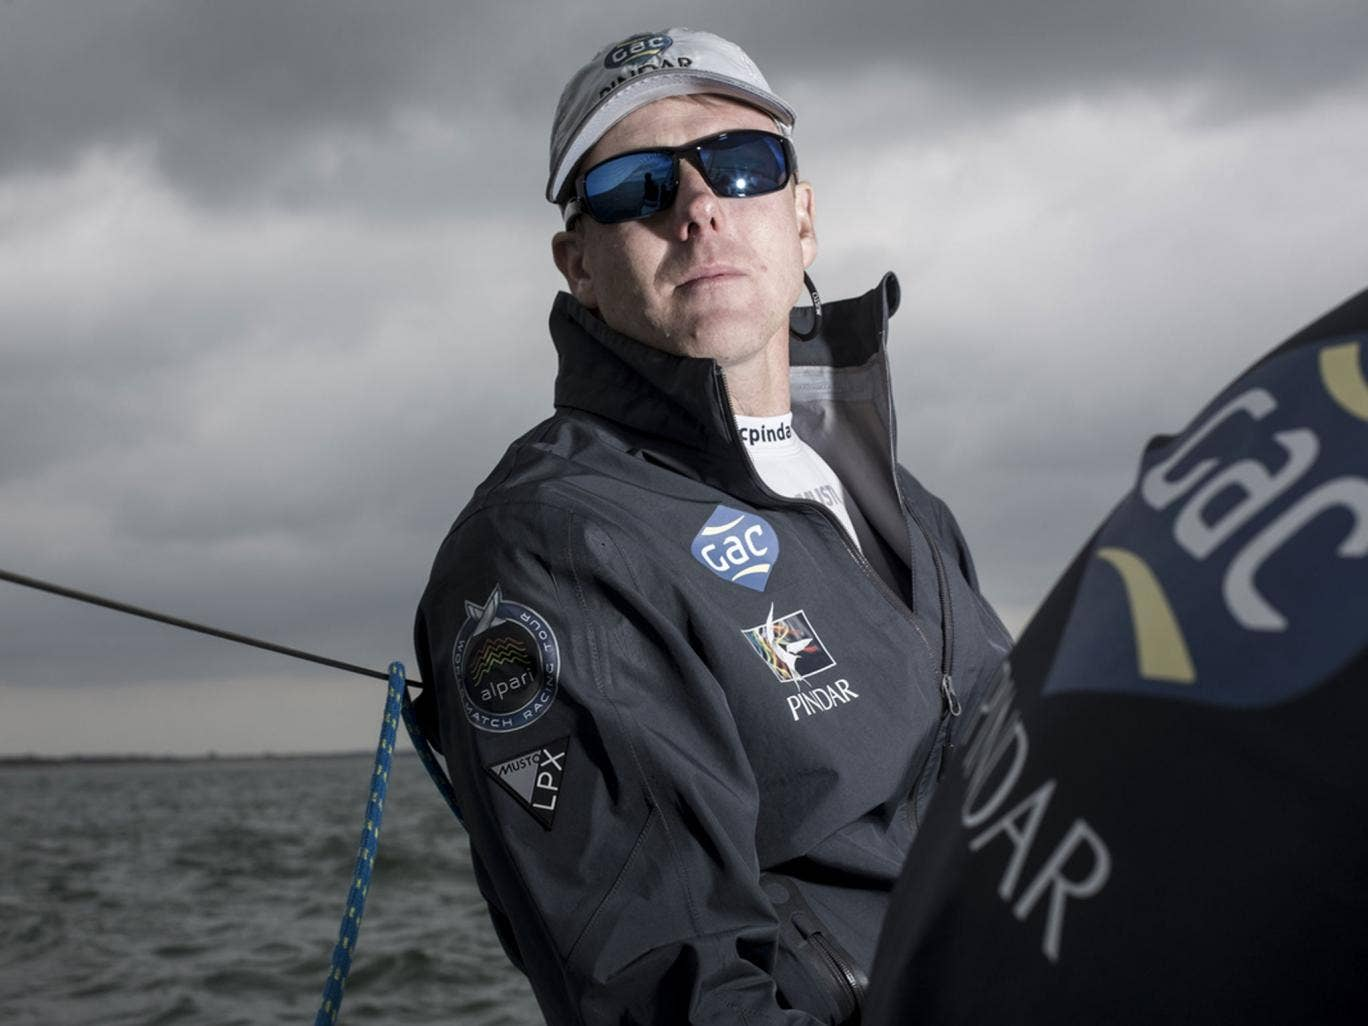 Team GAC Pindar skipper Ian Williams, four-time winner of the Alpari World Match Racing Tour, starts his quest for a record-breaking five card trick in Germany next week